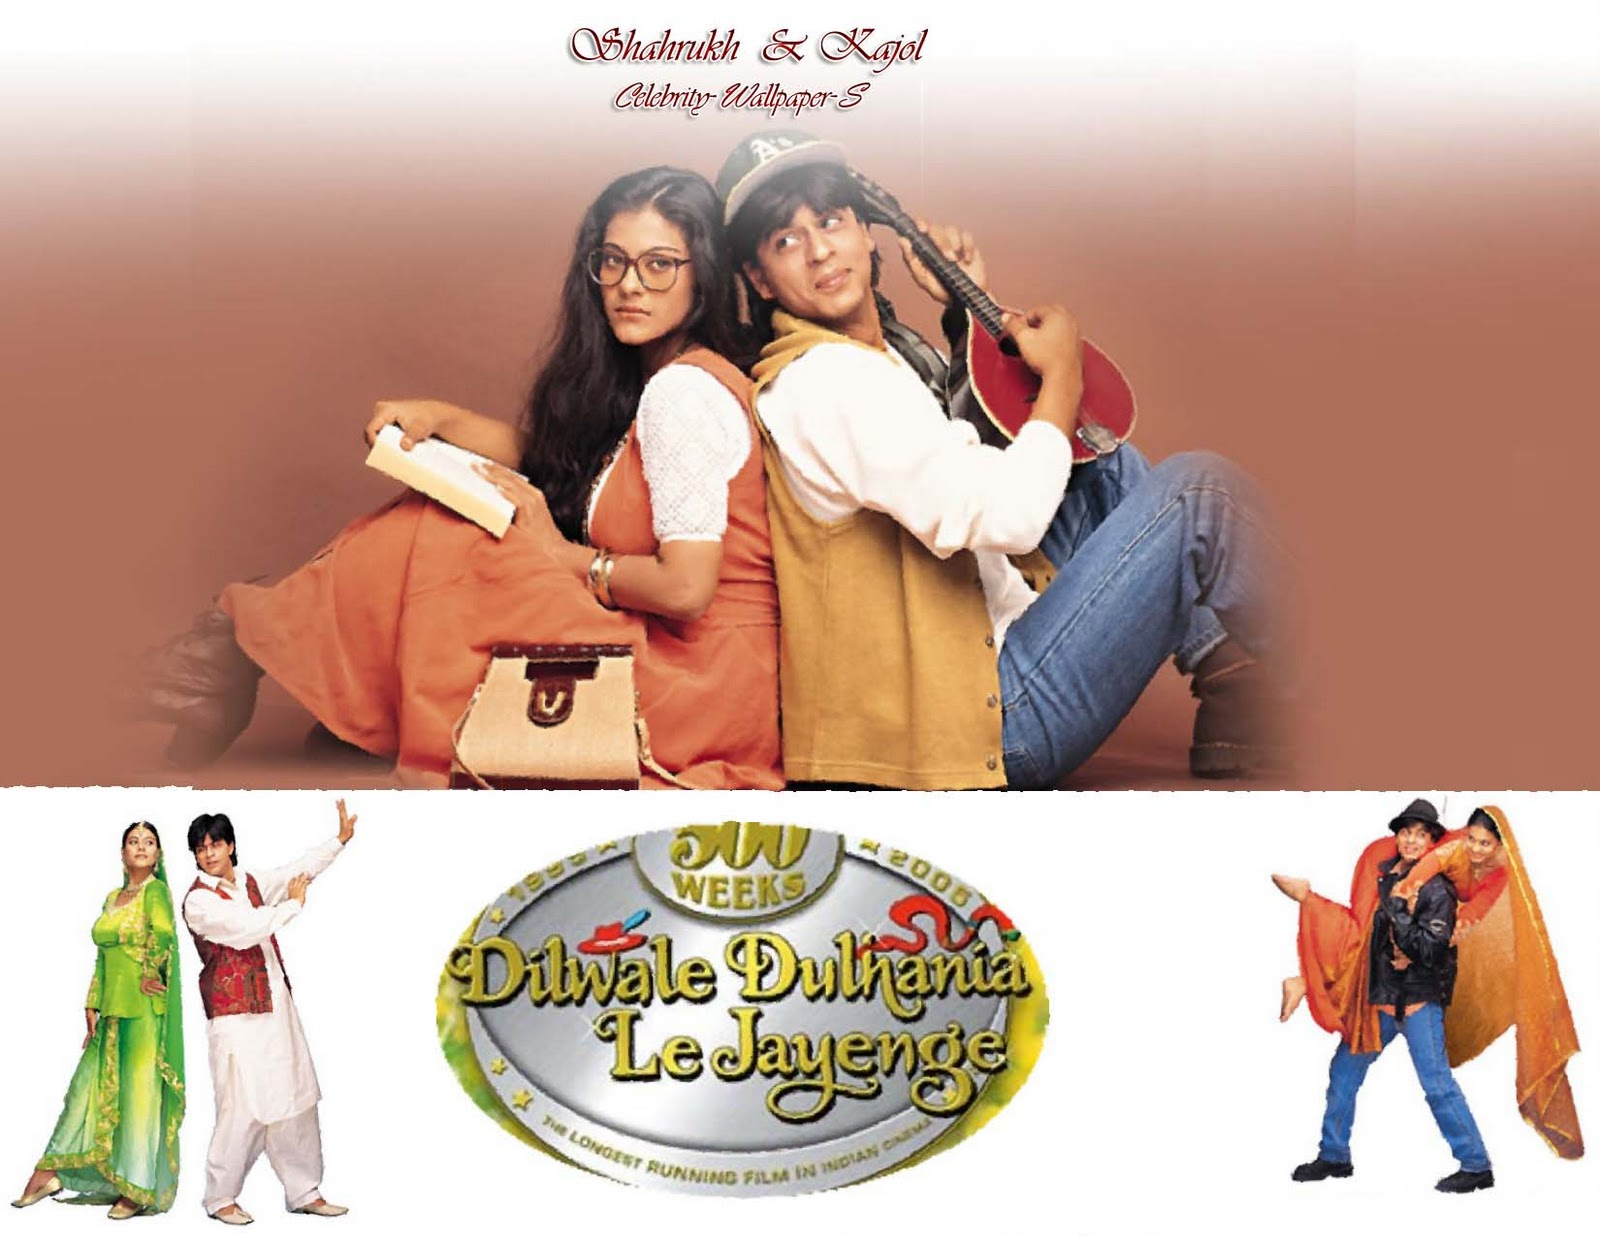 Ddlj Hd Wallpaper Download Pic New Posts Ddlj Wallpapers Photos